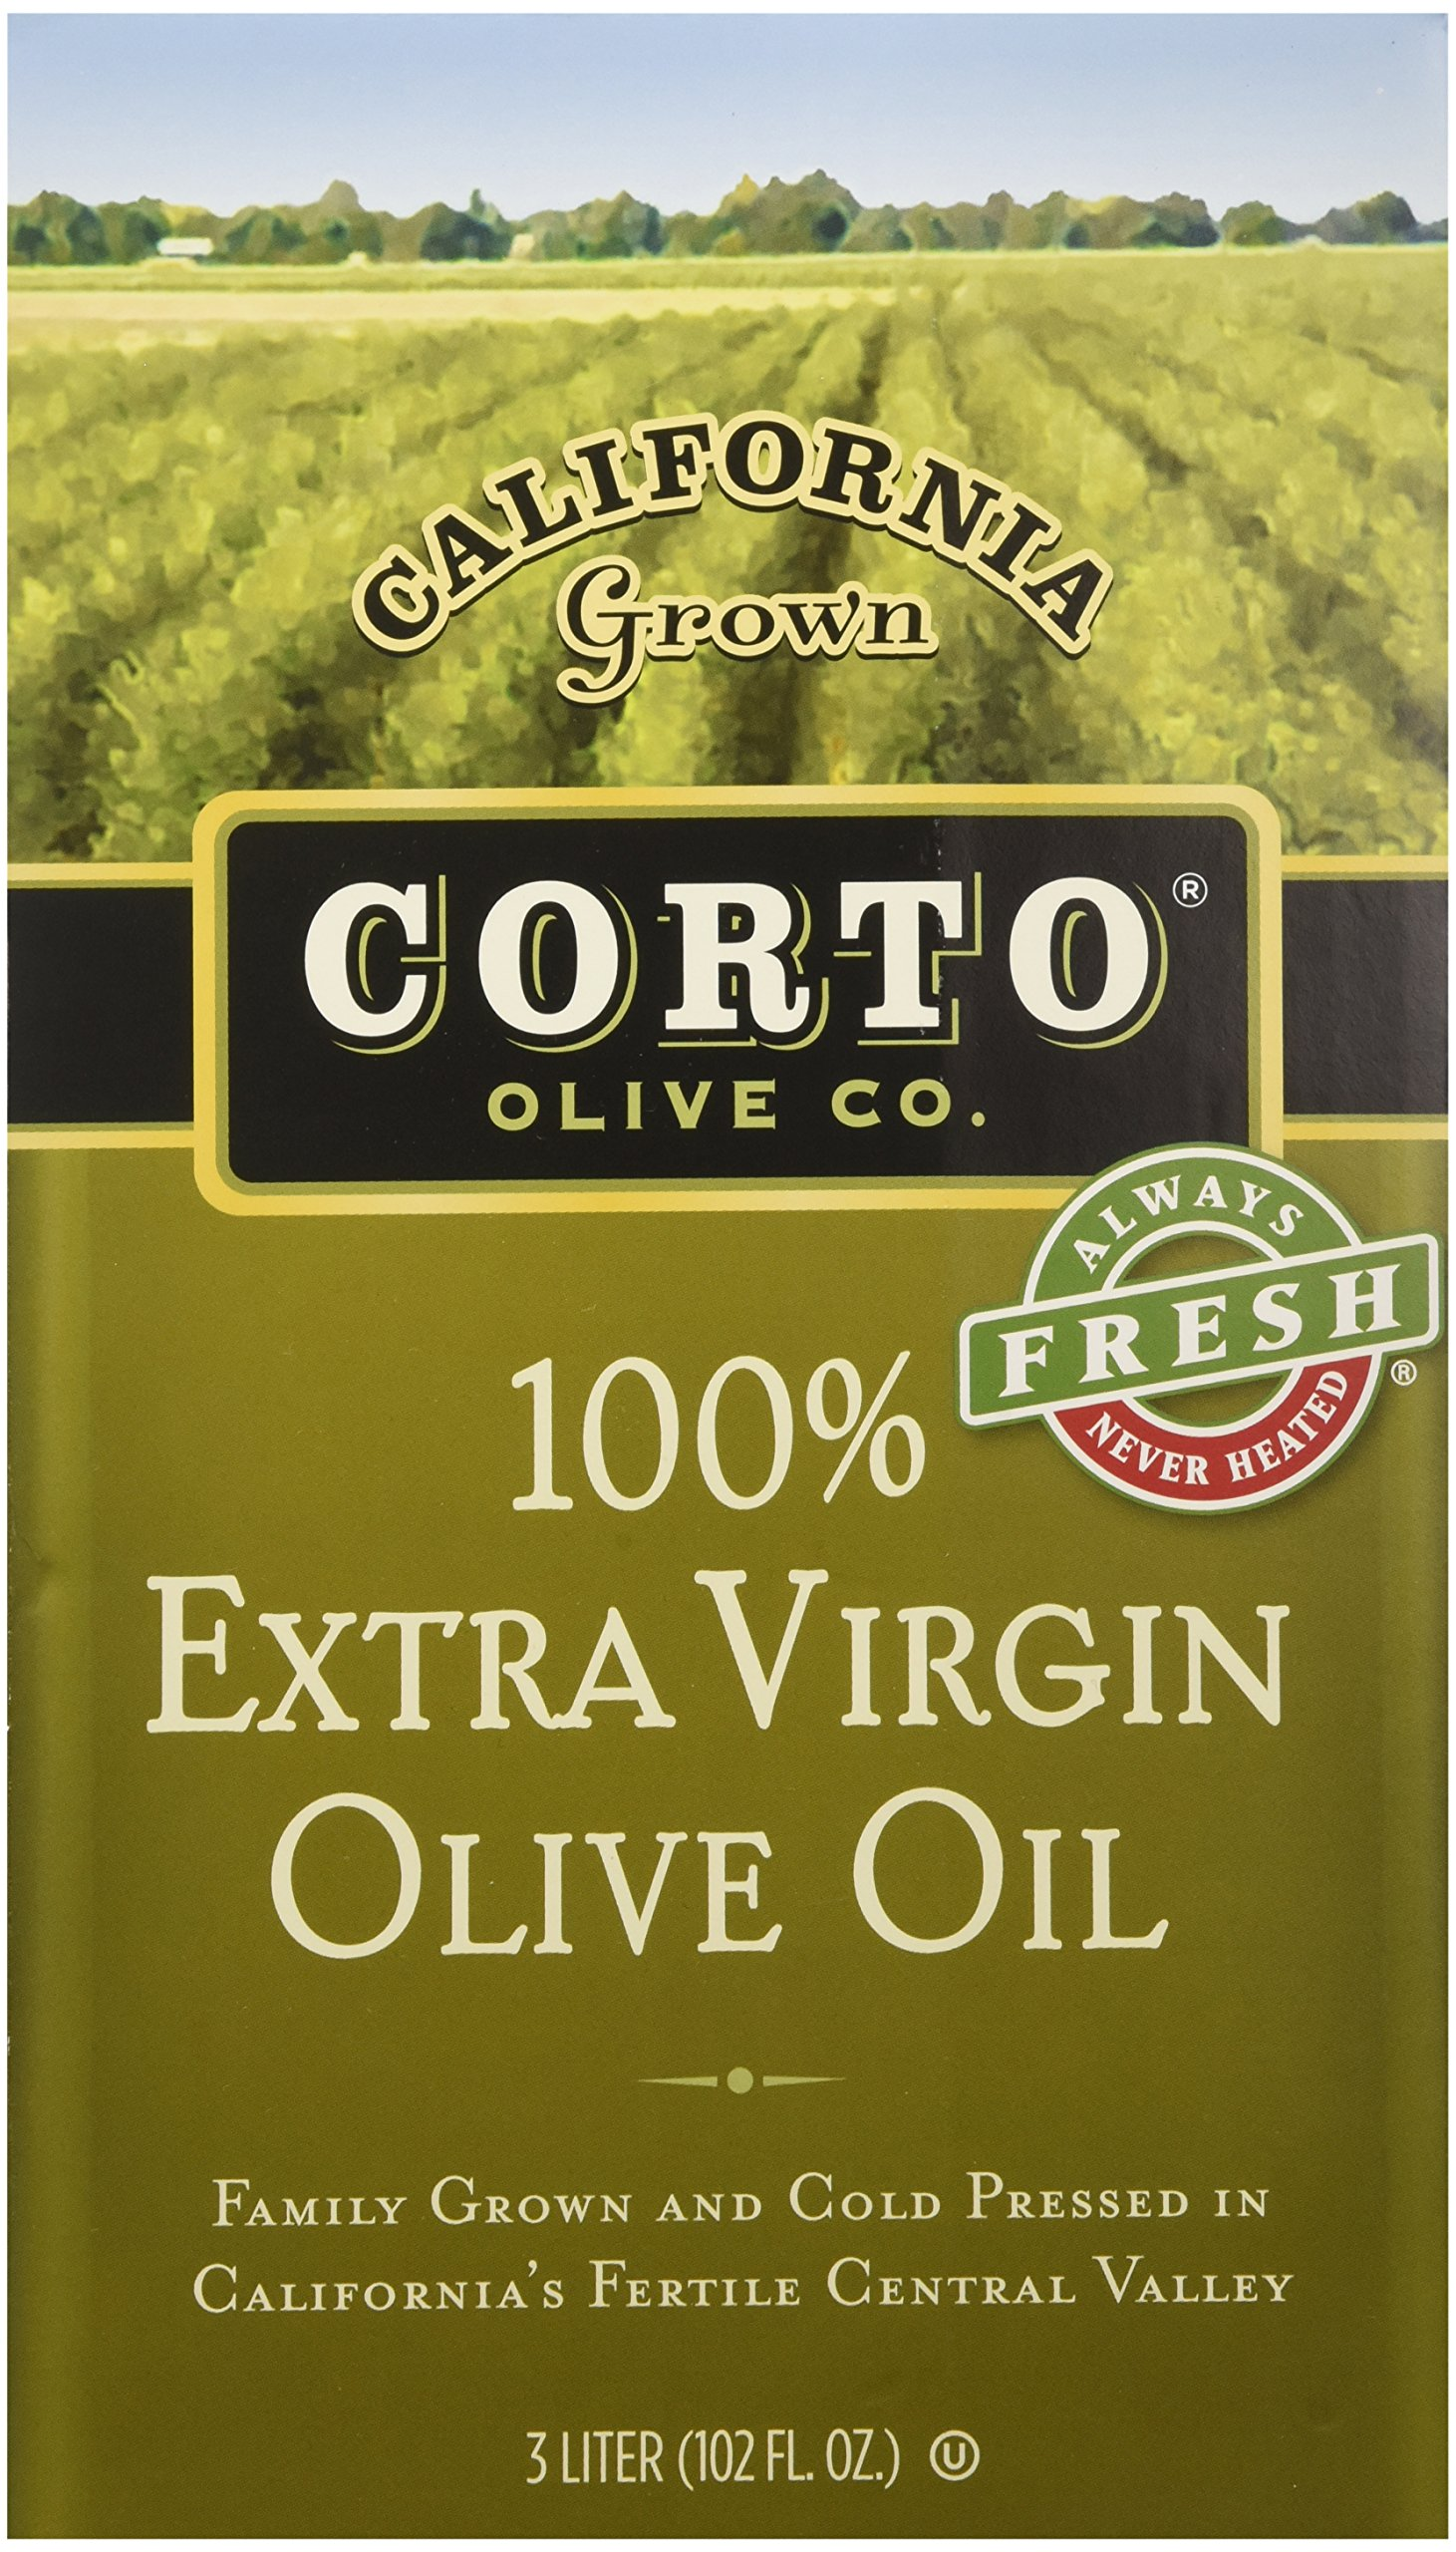 Corto Extra Virgin Olive Oil From California, (3 Liter Fresh Sealed Bag in Box) by Corto (Image #1)